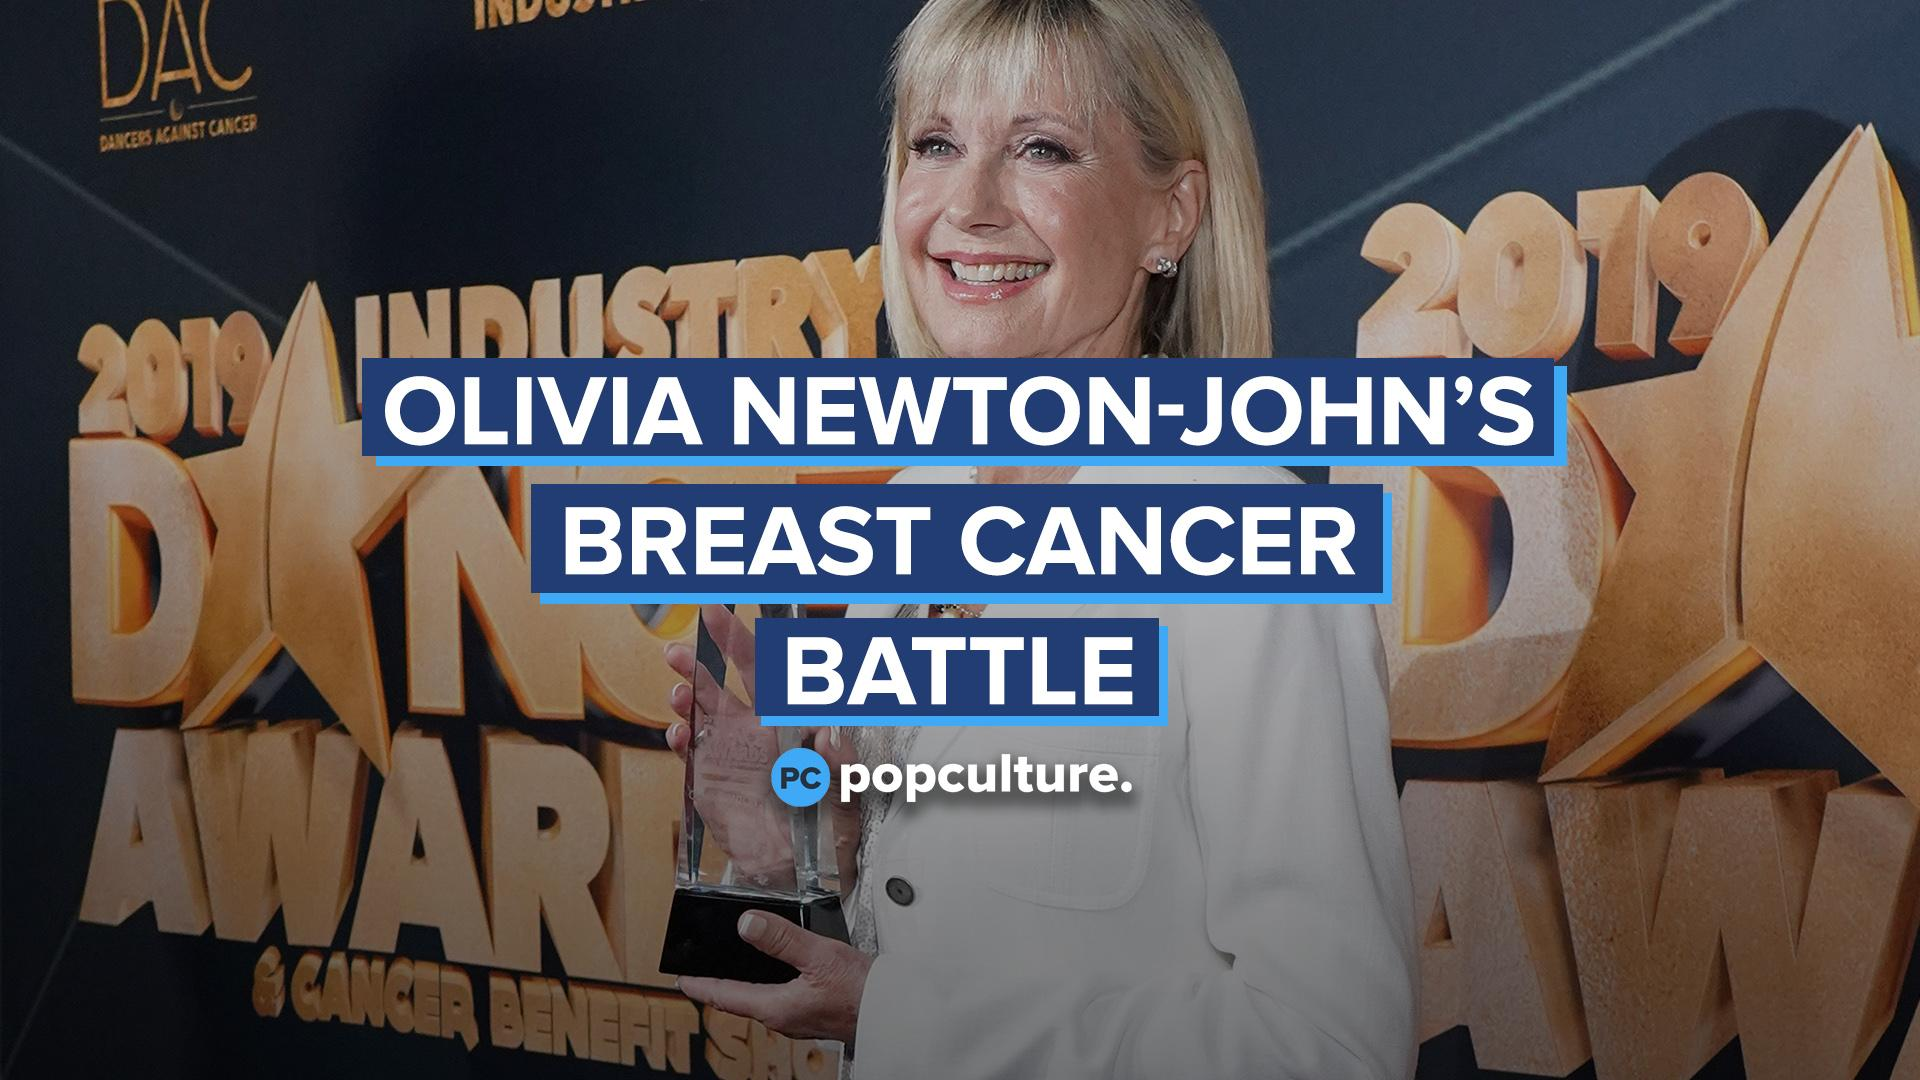 Olivia Newton-John's Breast Cancer Battle screen capture